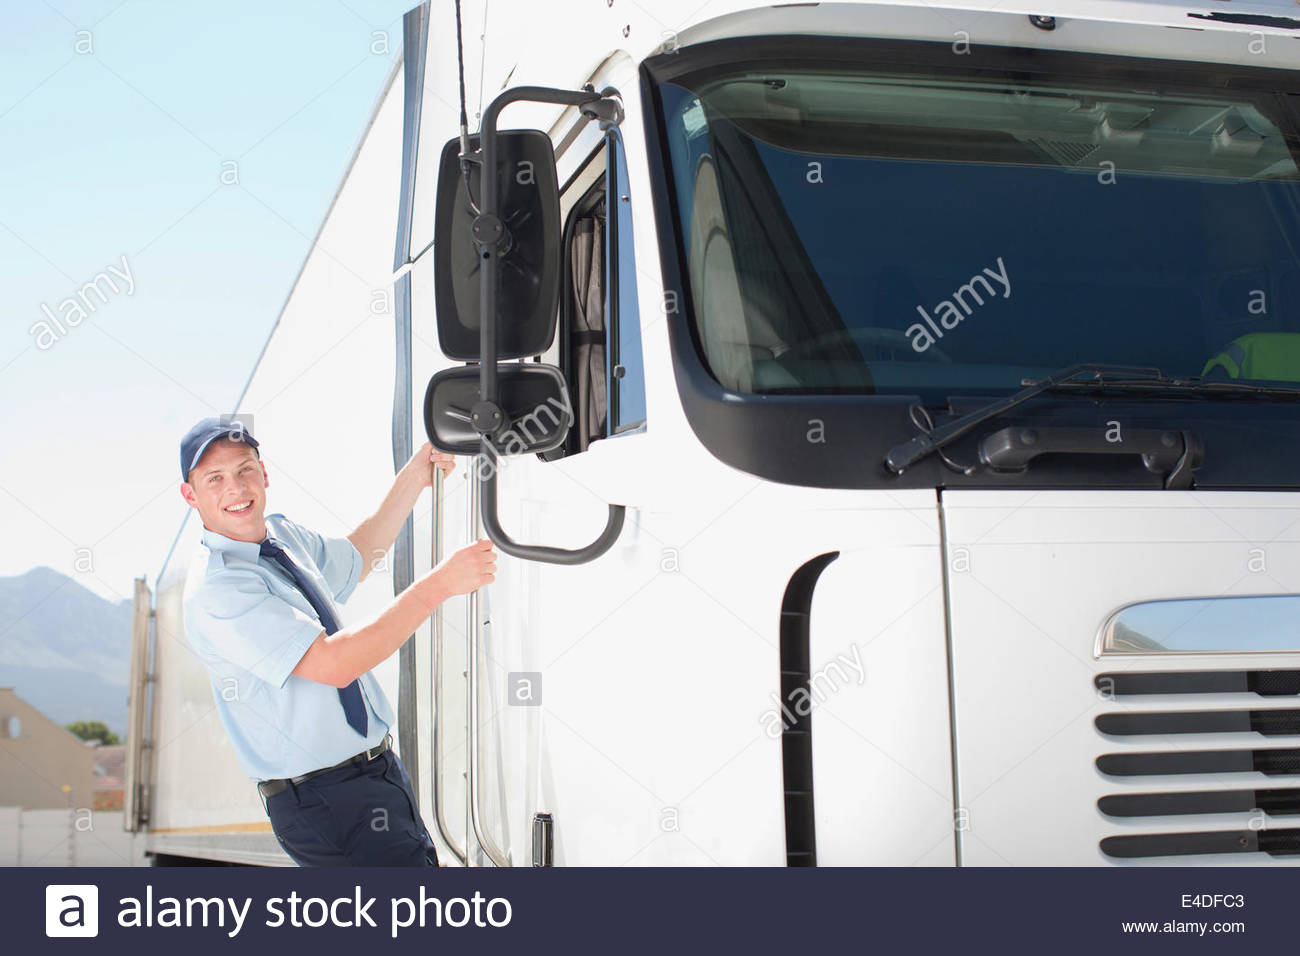 Truck driver standing on side of semi-truck - Stock Image